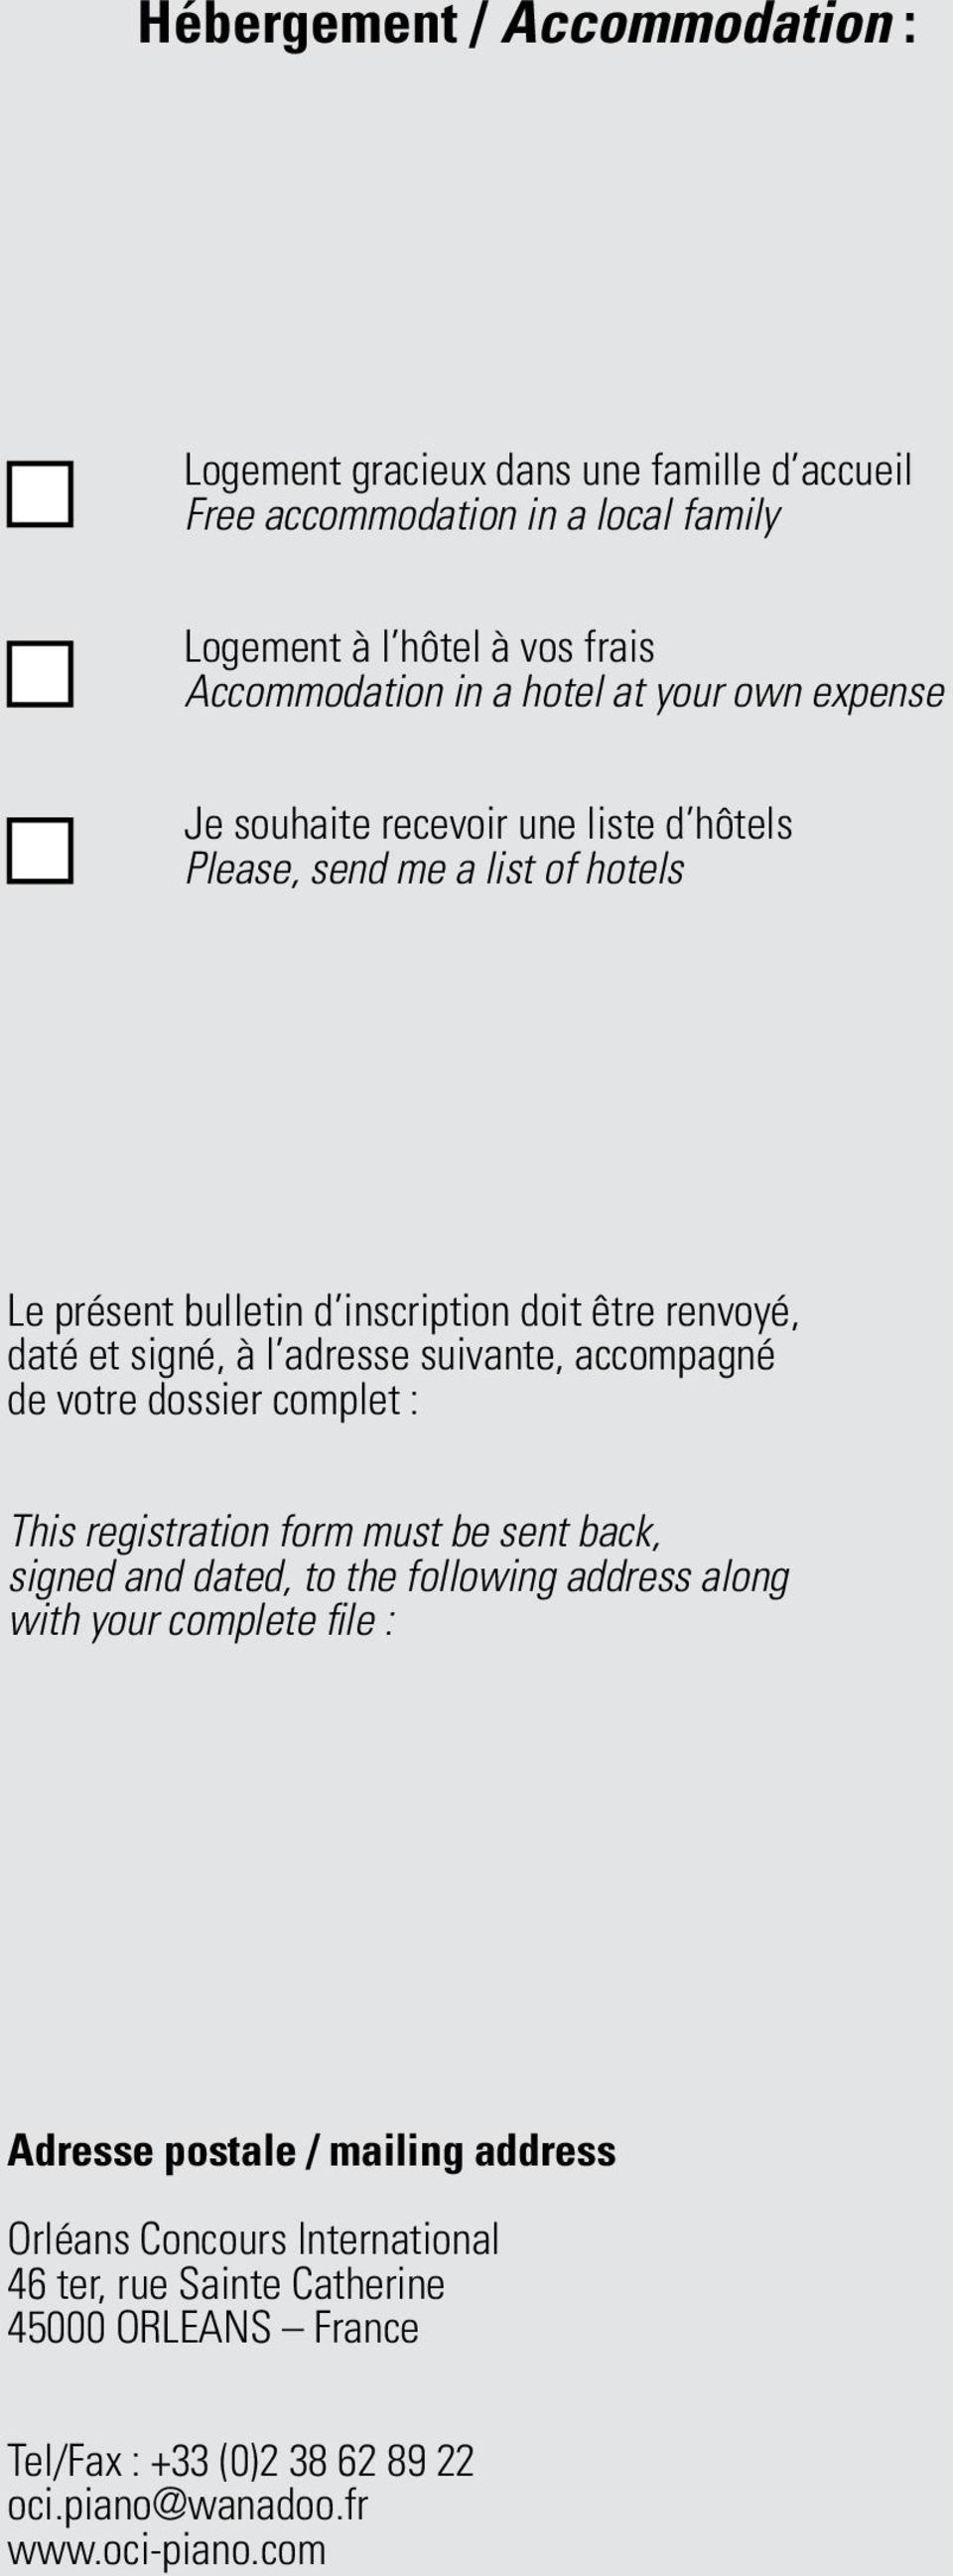 suivante, accompagné de votre dossier complet : This registration form must be sent back, signed and dated, to the following address along with your complete file : Adresse